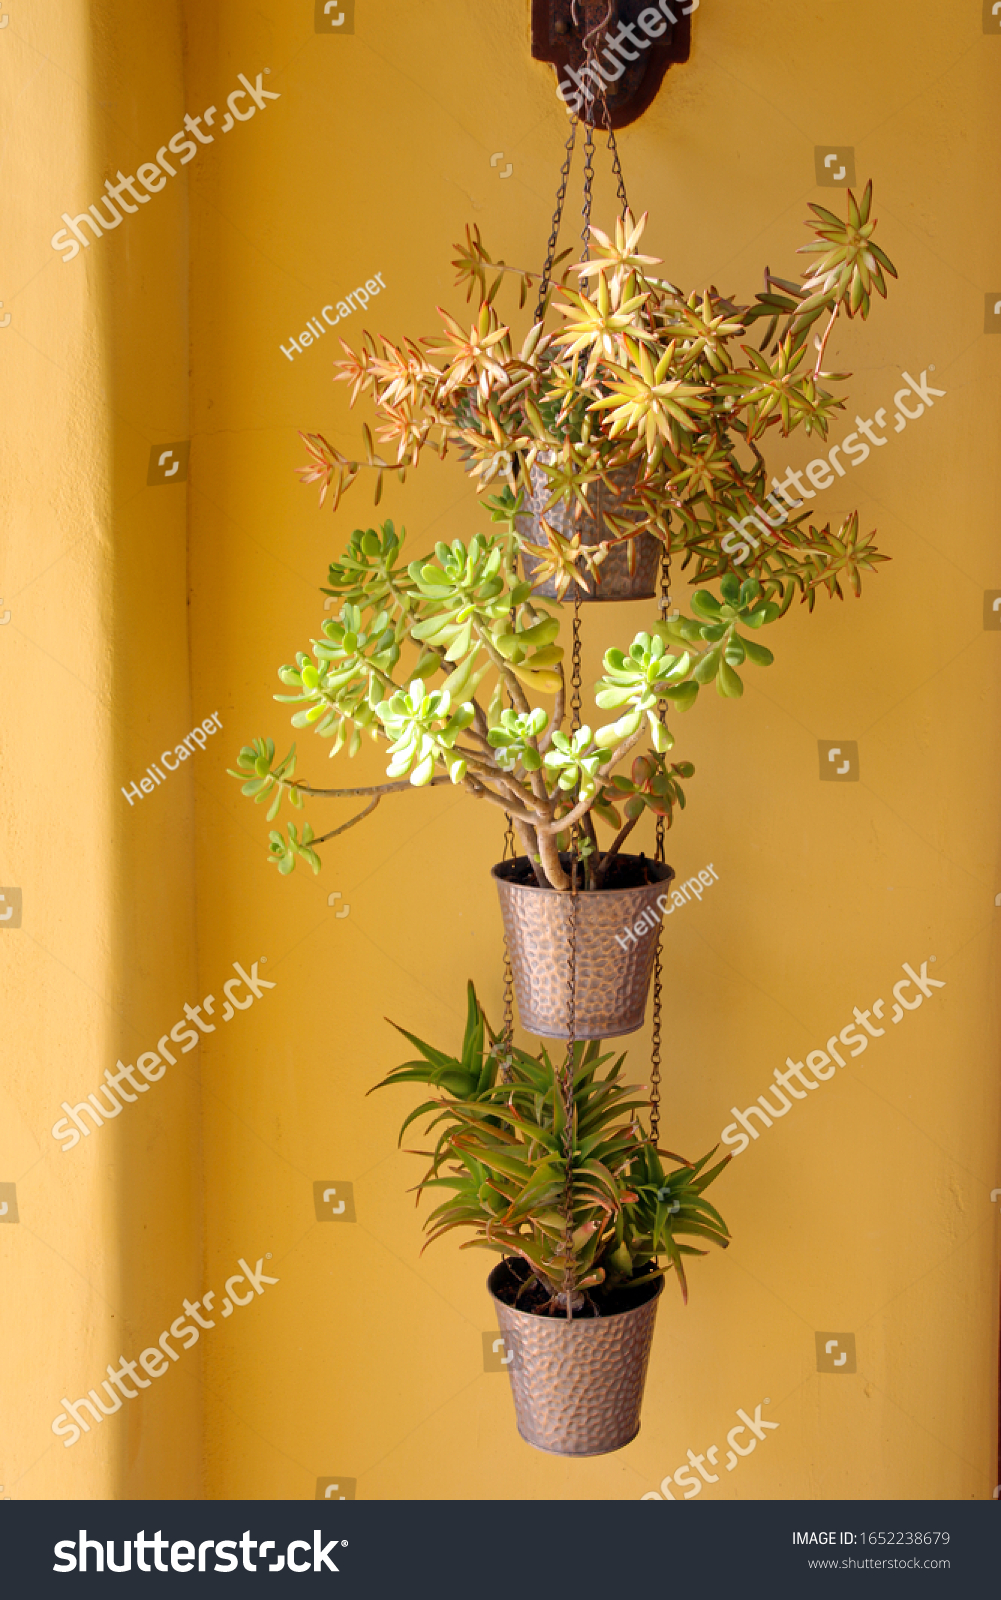 Succulents Hanging Pots Yellow Background Stock Photo Edit Now 1652238679